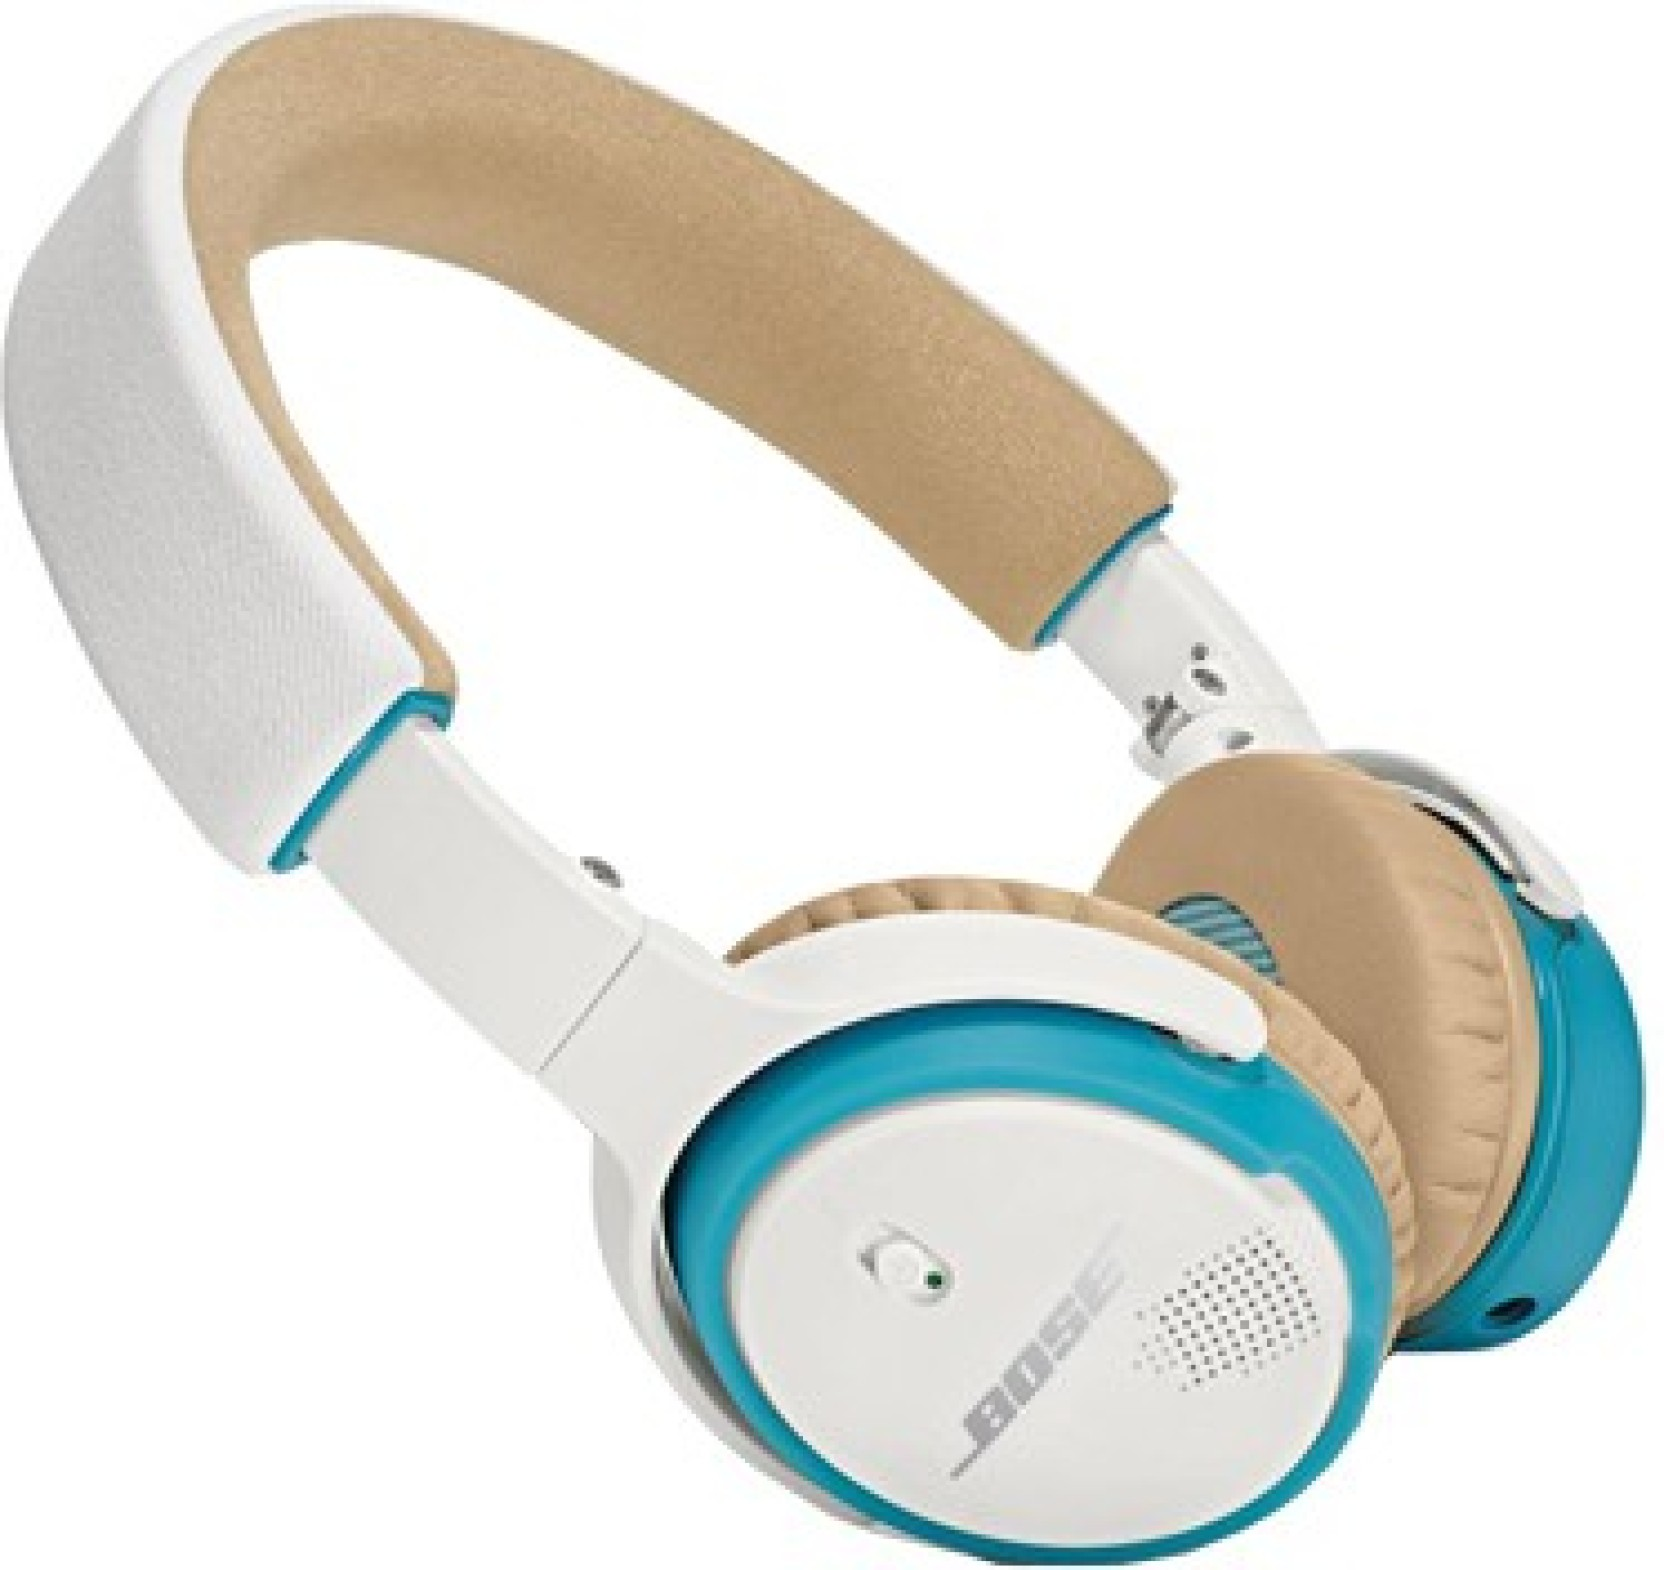 Bose SoundLink On Ear Wireless Bluetooth Headphone Price In India